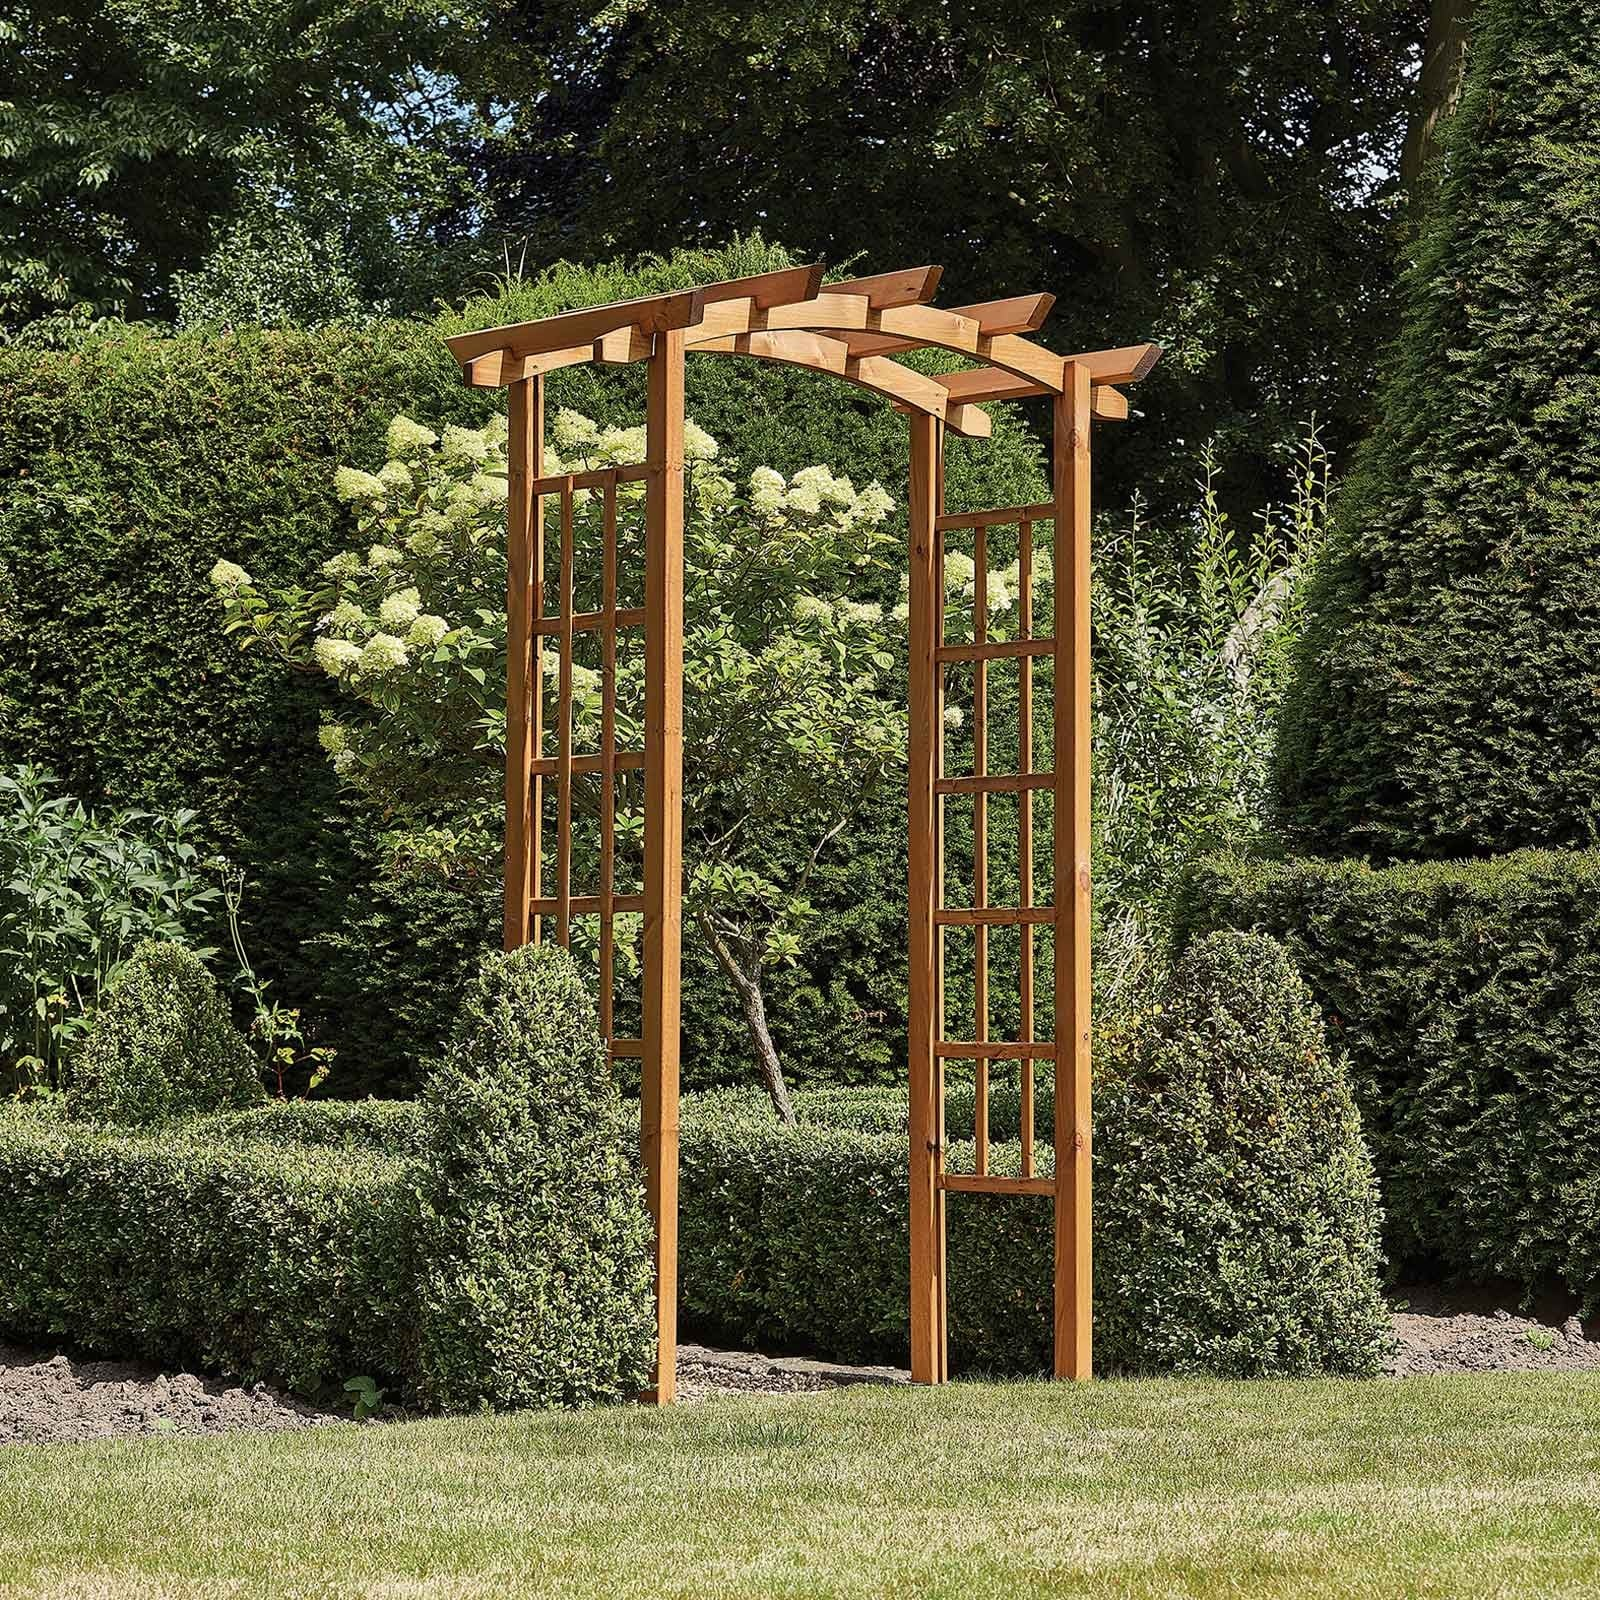 The Thornton Rustic Wooden Garden Arch Will Create A Stunning Focal Point In Any Garden And Is Perfect For Training A Variety Of Garden Plants. Crafte